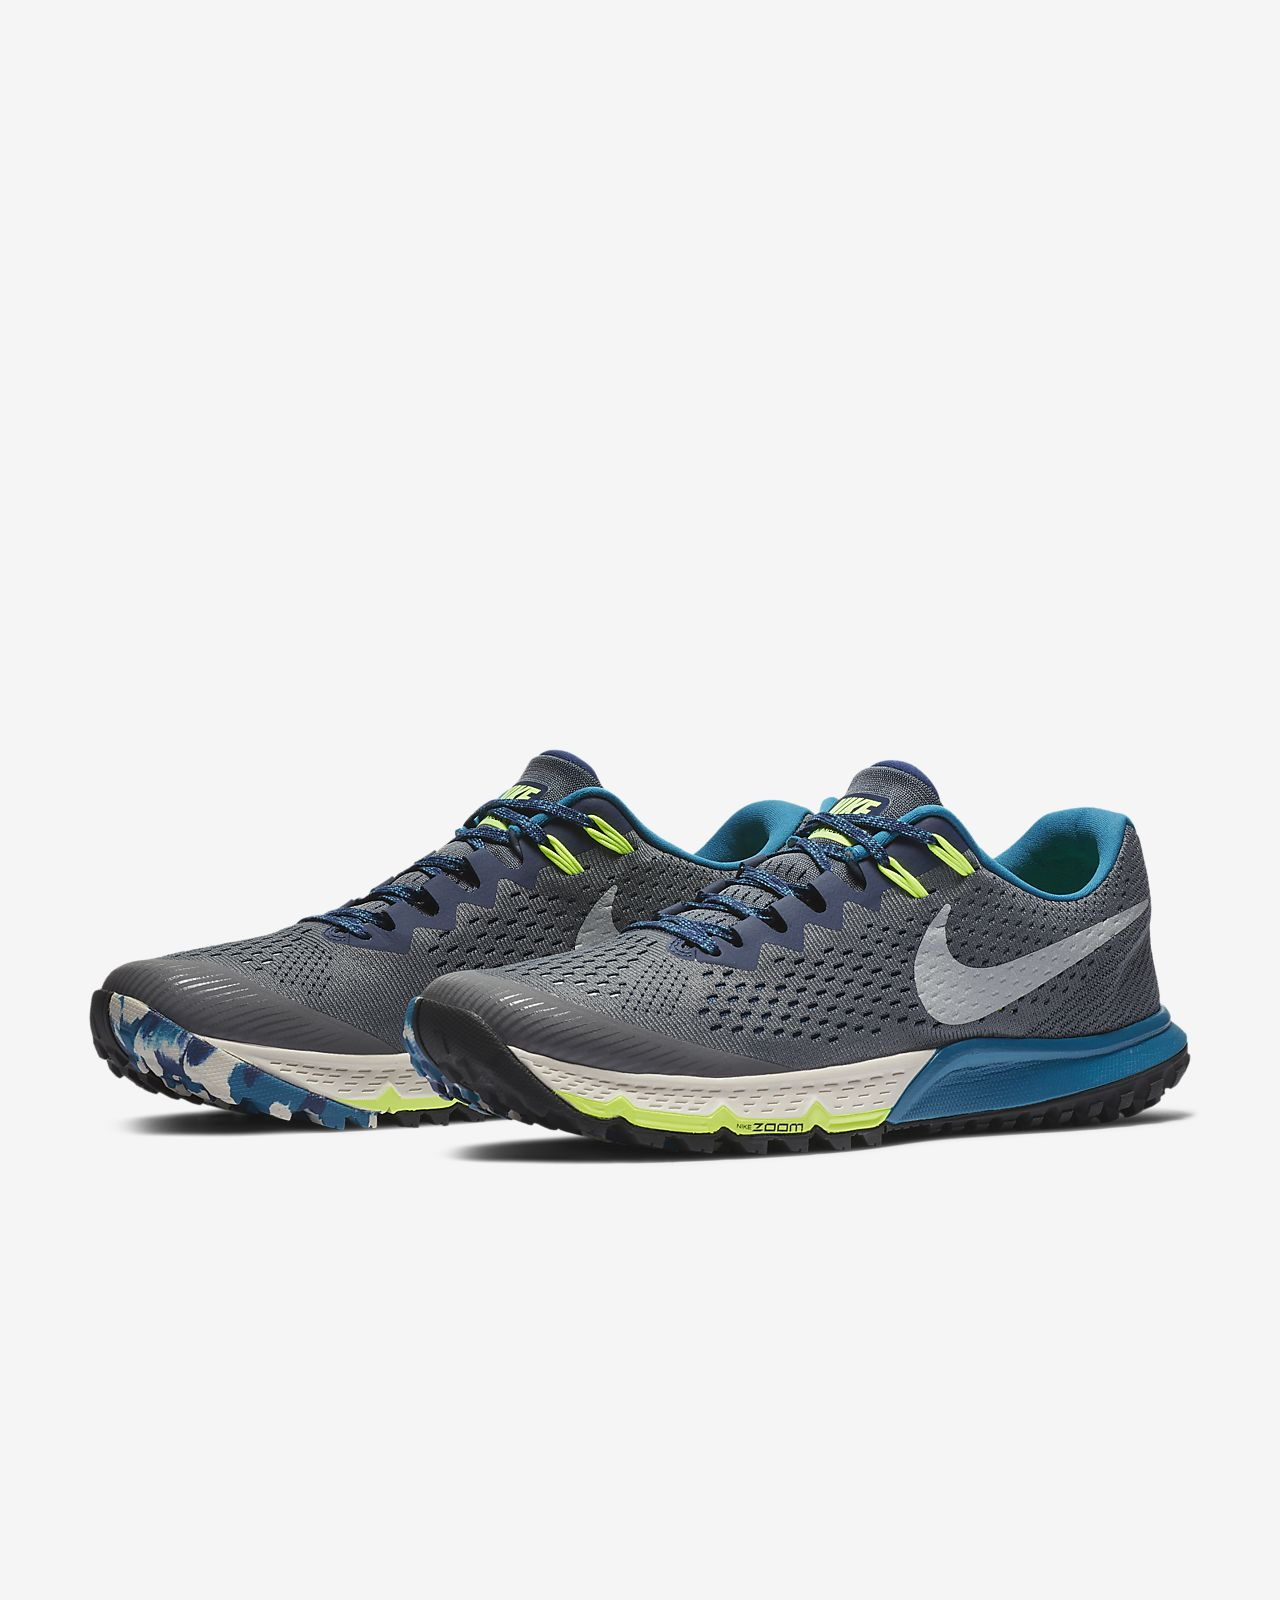 7bbe9c72da3f1 Nike Air Zoom Terra Kiger 4 Men s Running Shoe. Nike.com